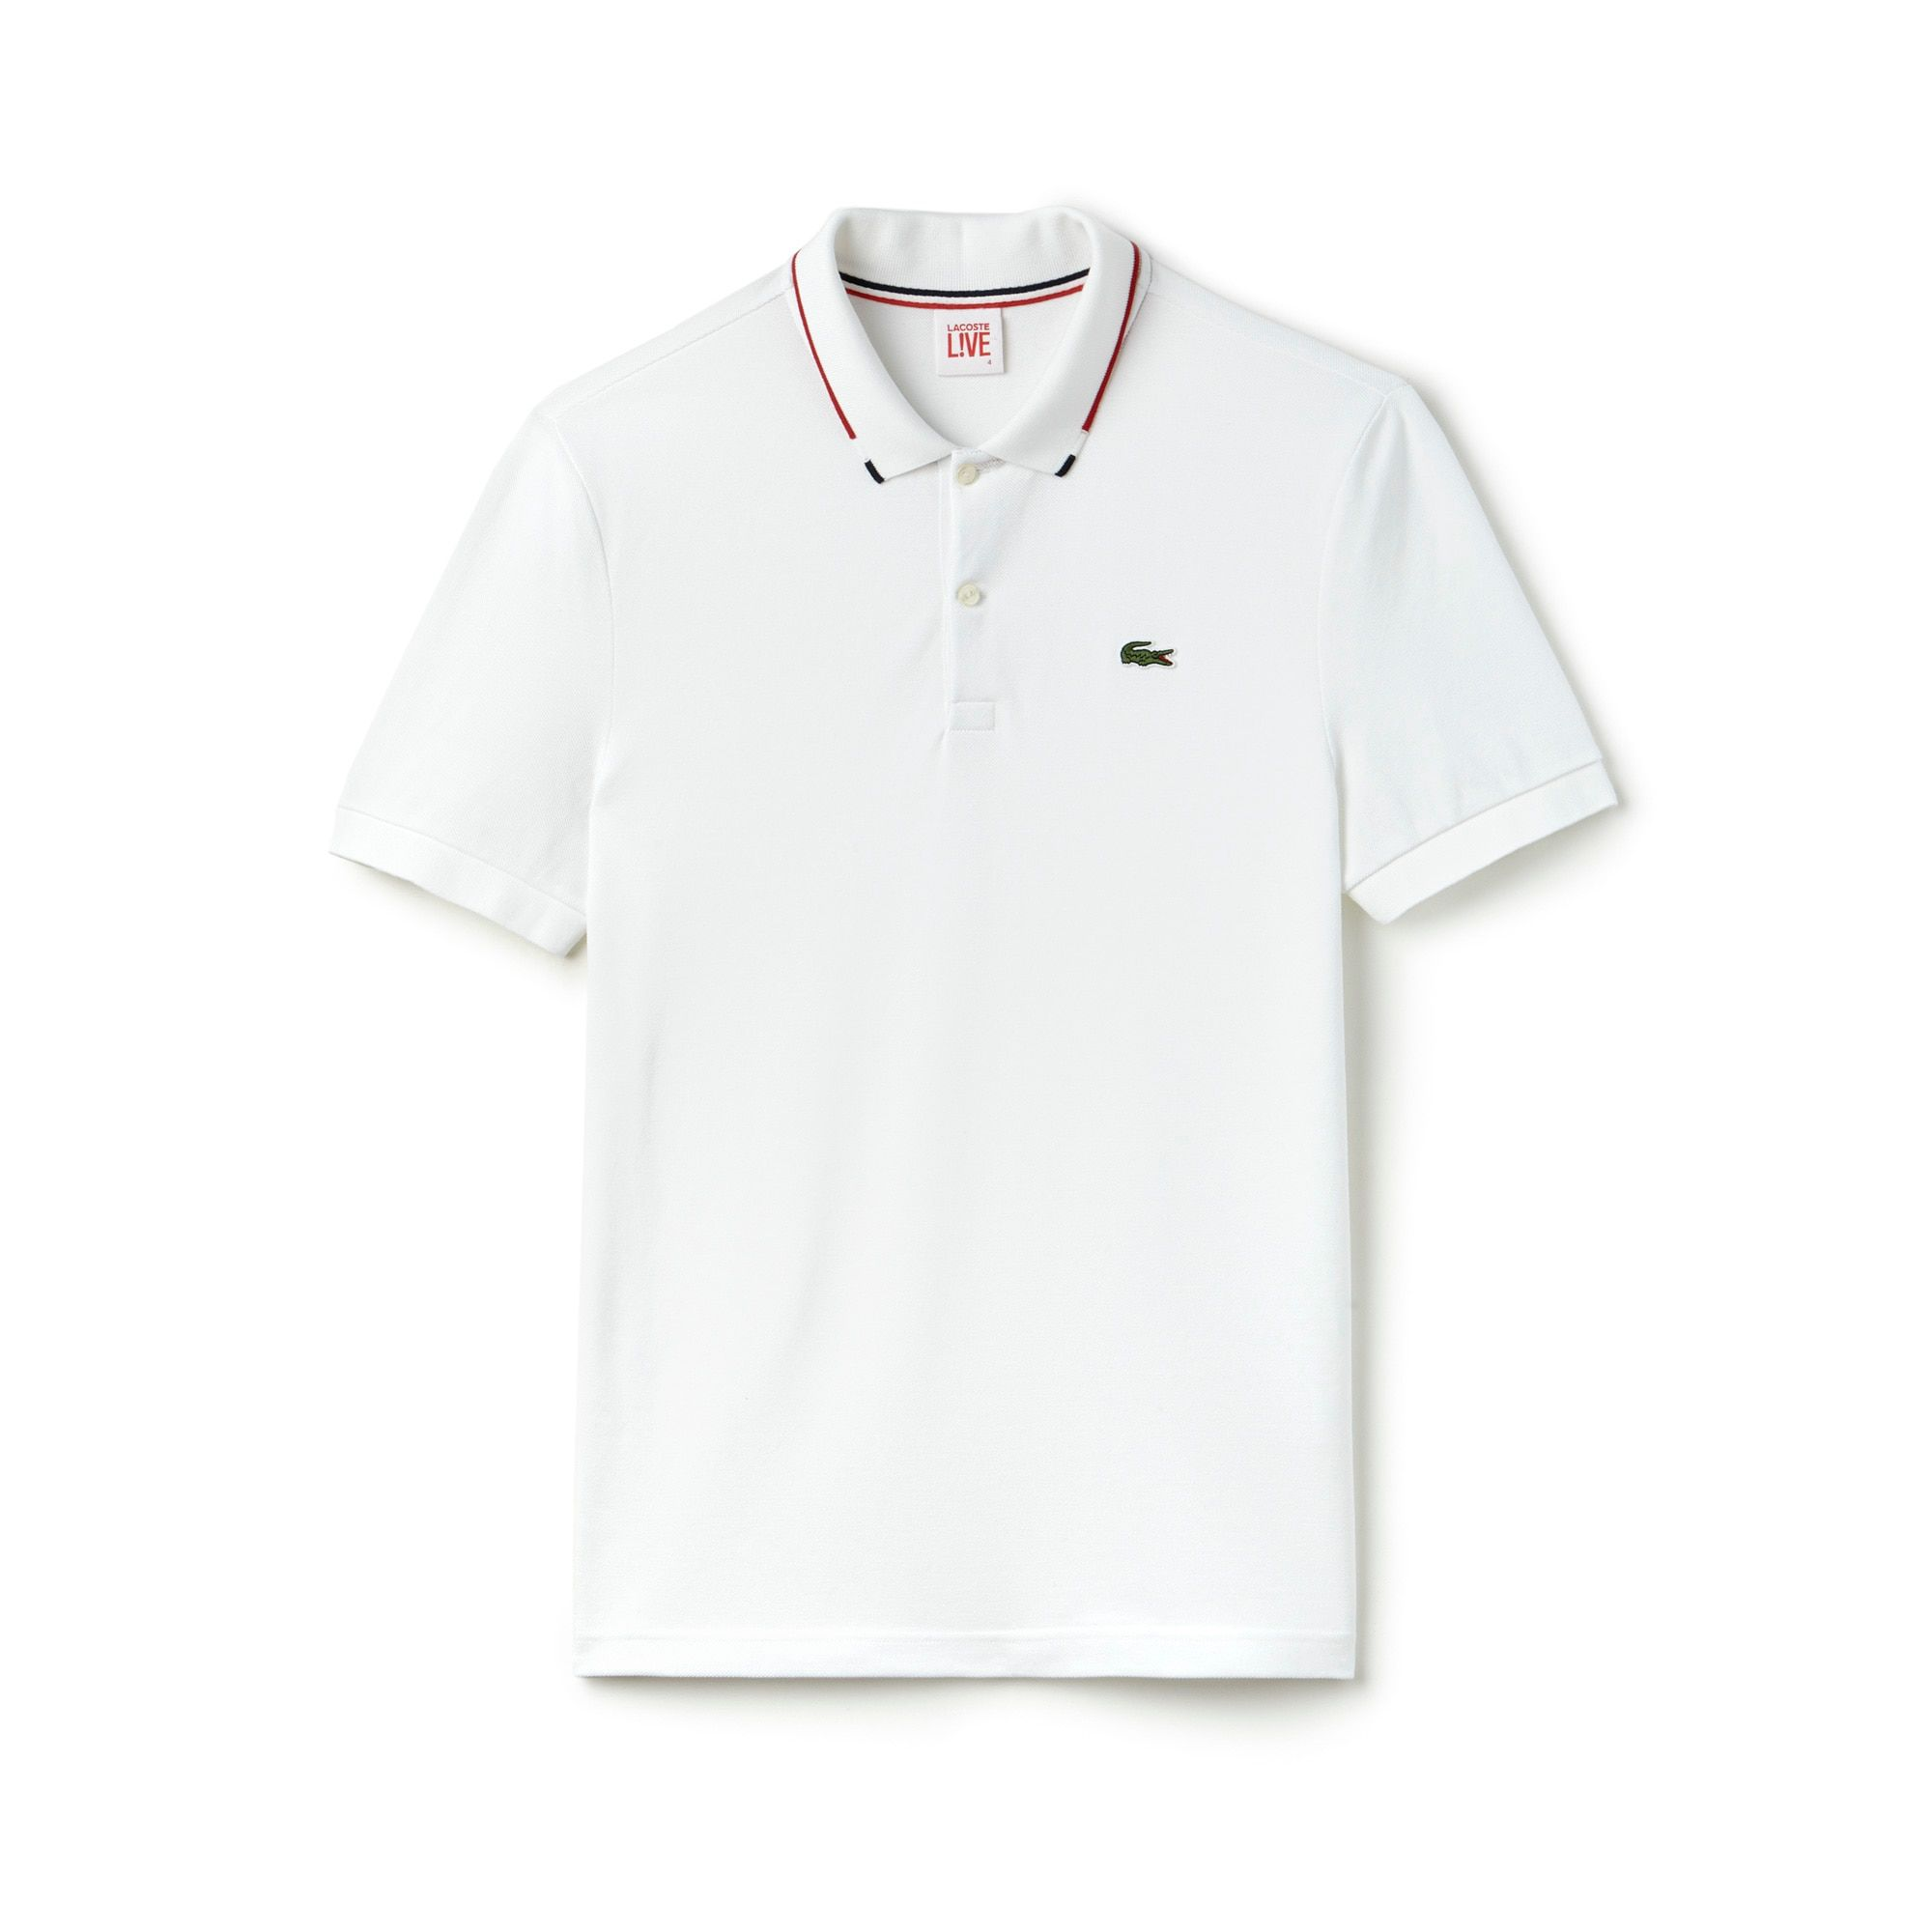 58e76986ad2 Lacoste Polo Shirt Price In South Africa   Chad Crowley Productions